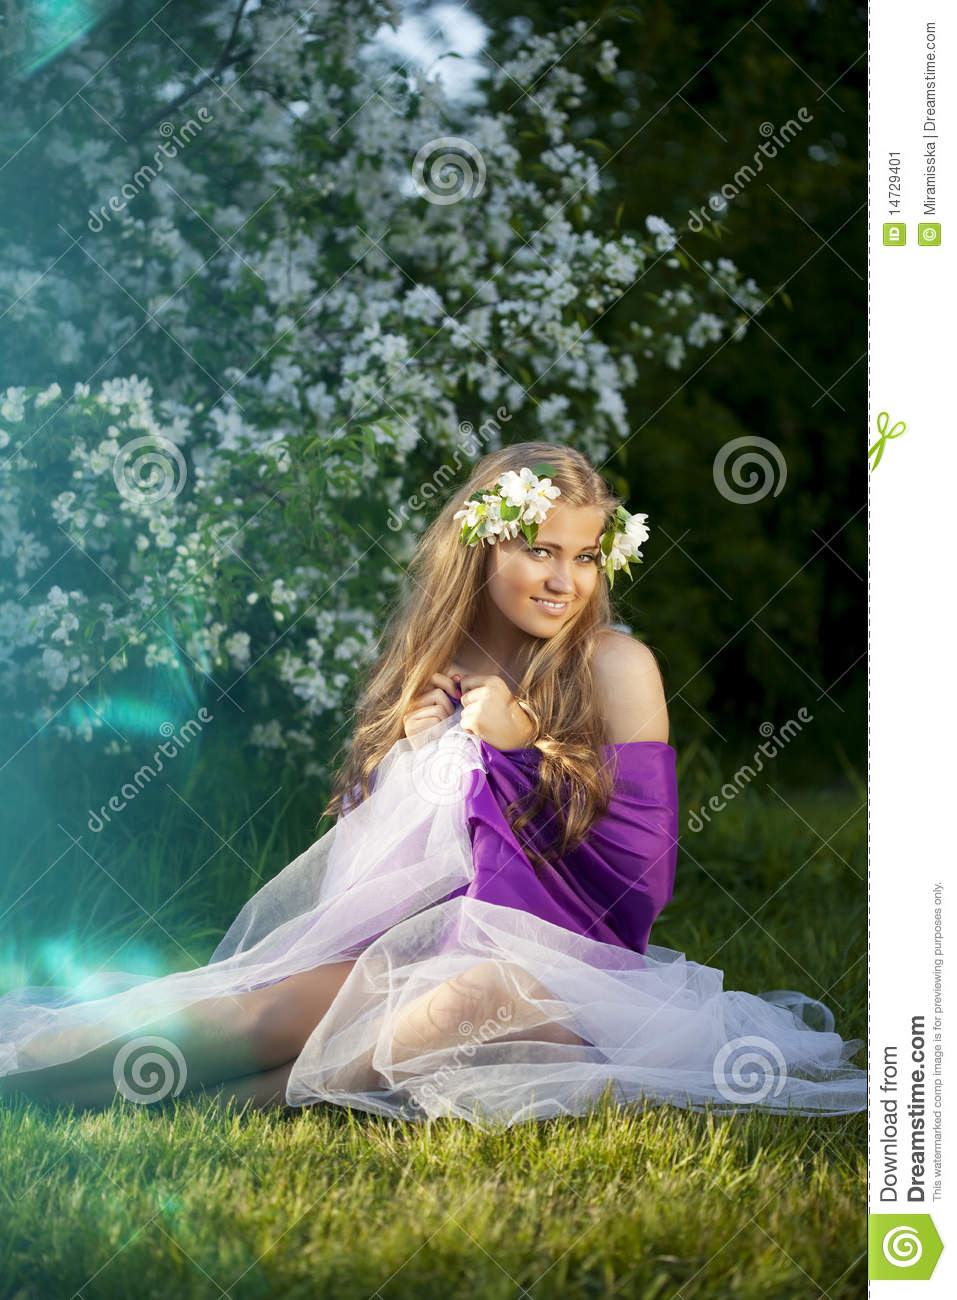 image Girl fairy tale dream girl